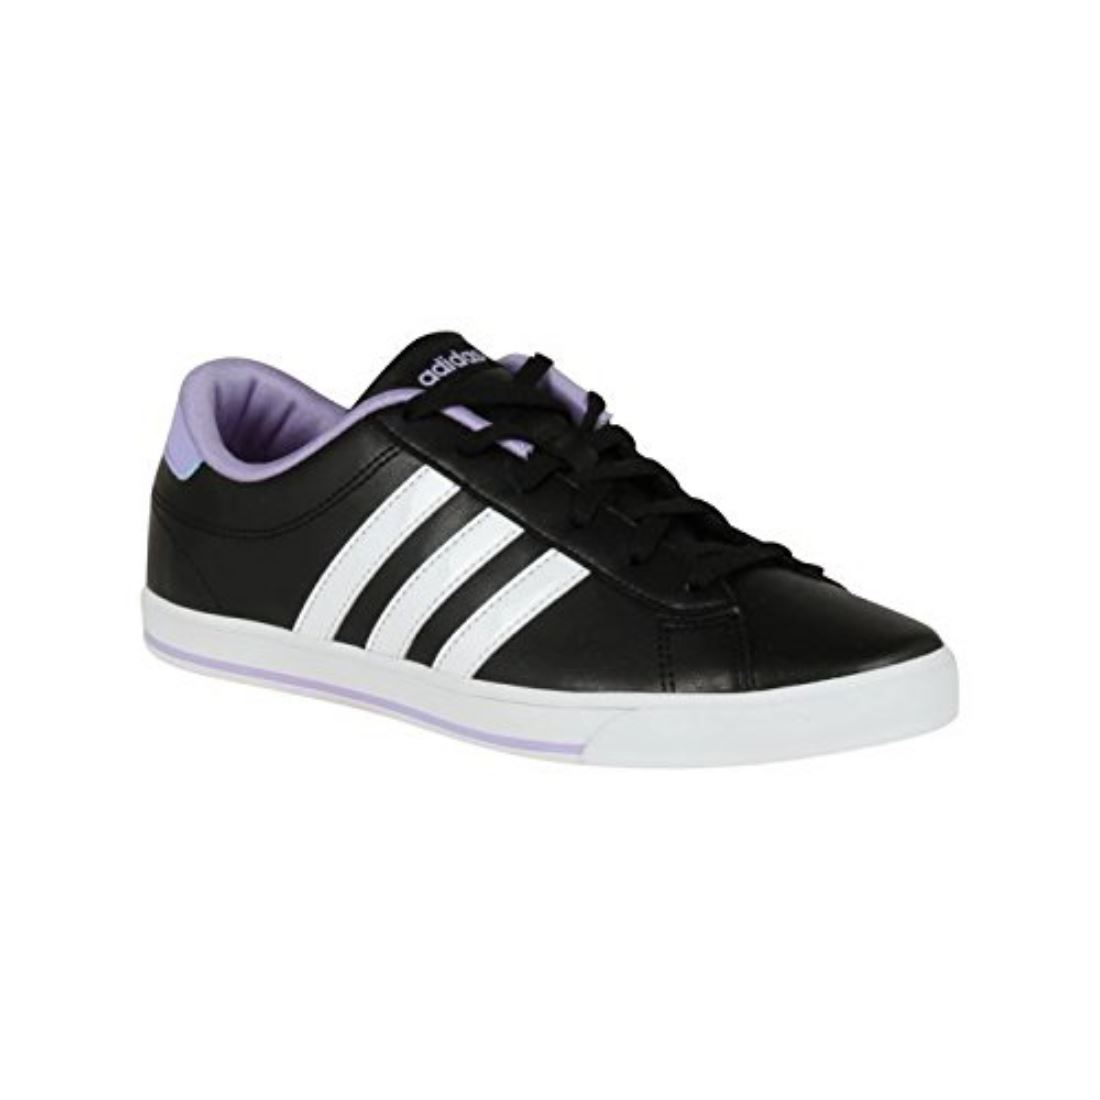 adidas neo womens se daily qt trainers low top lace